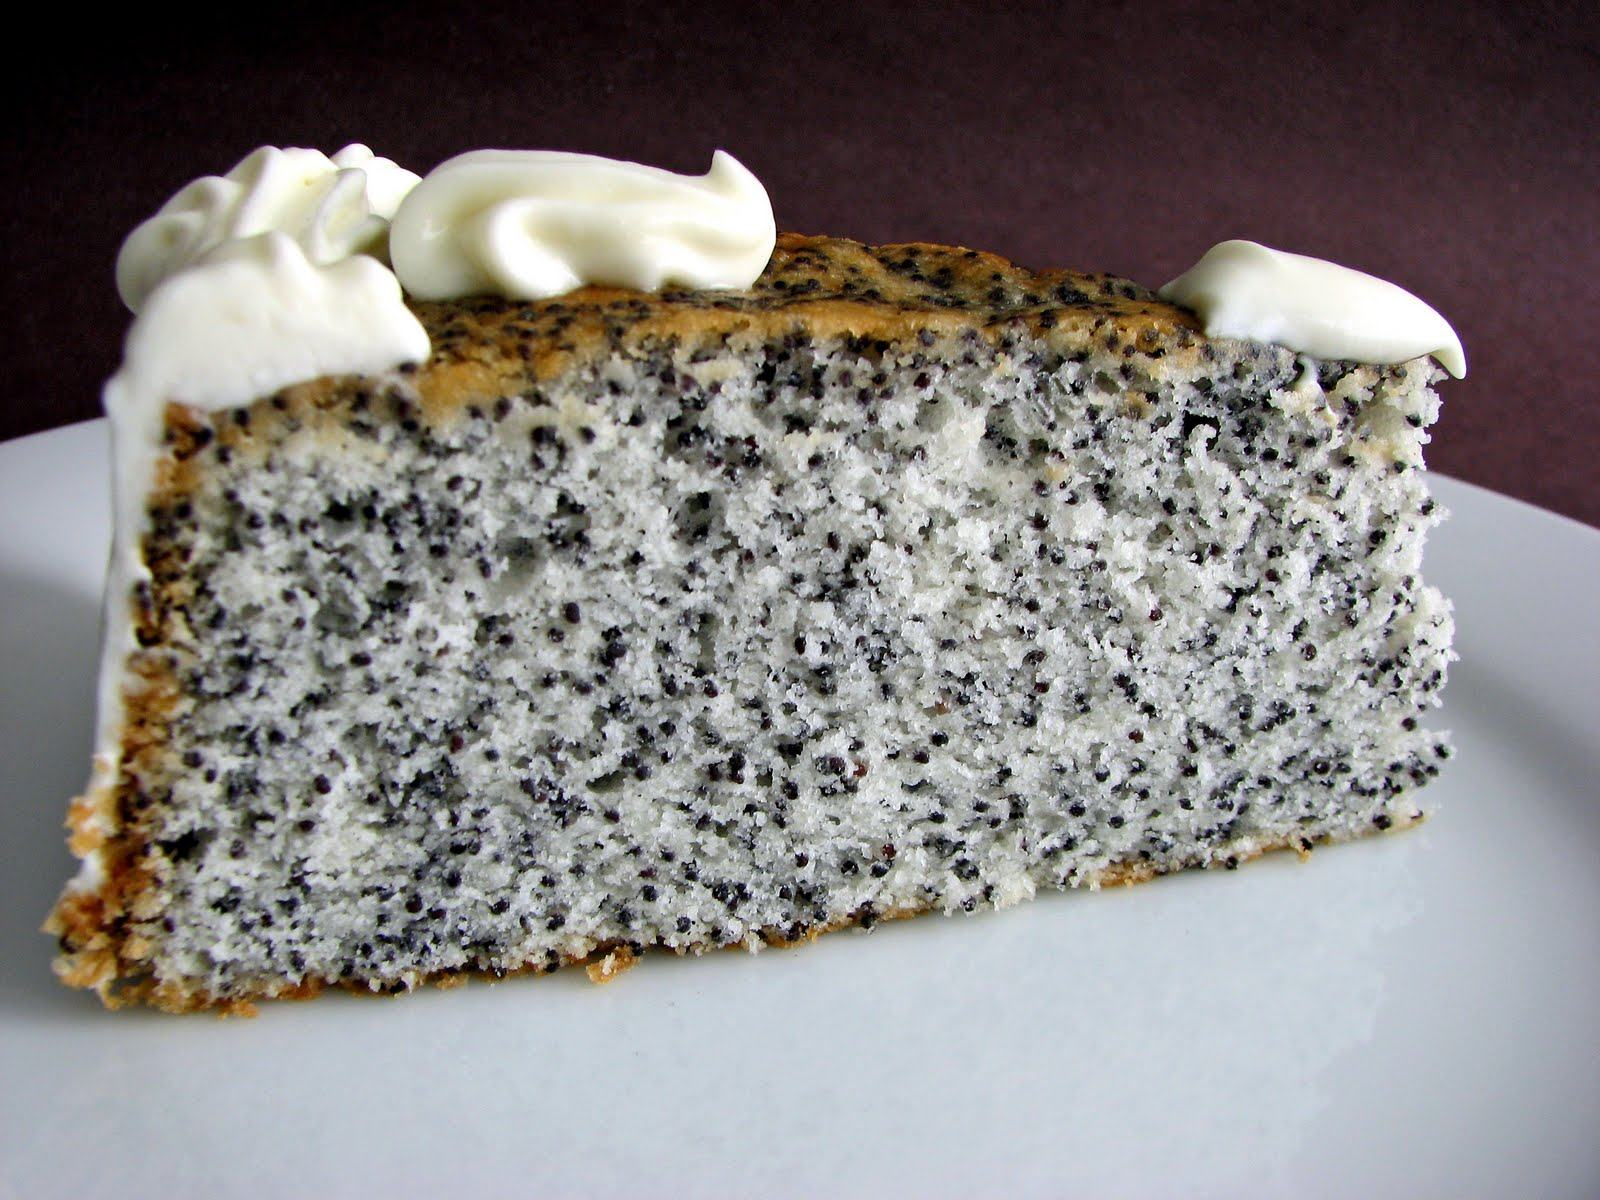 :pastry studio: Poppy Seed Cake with Mascarpone Cream